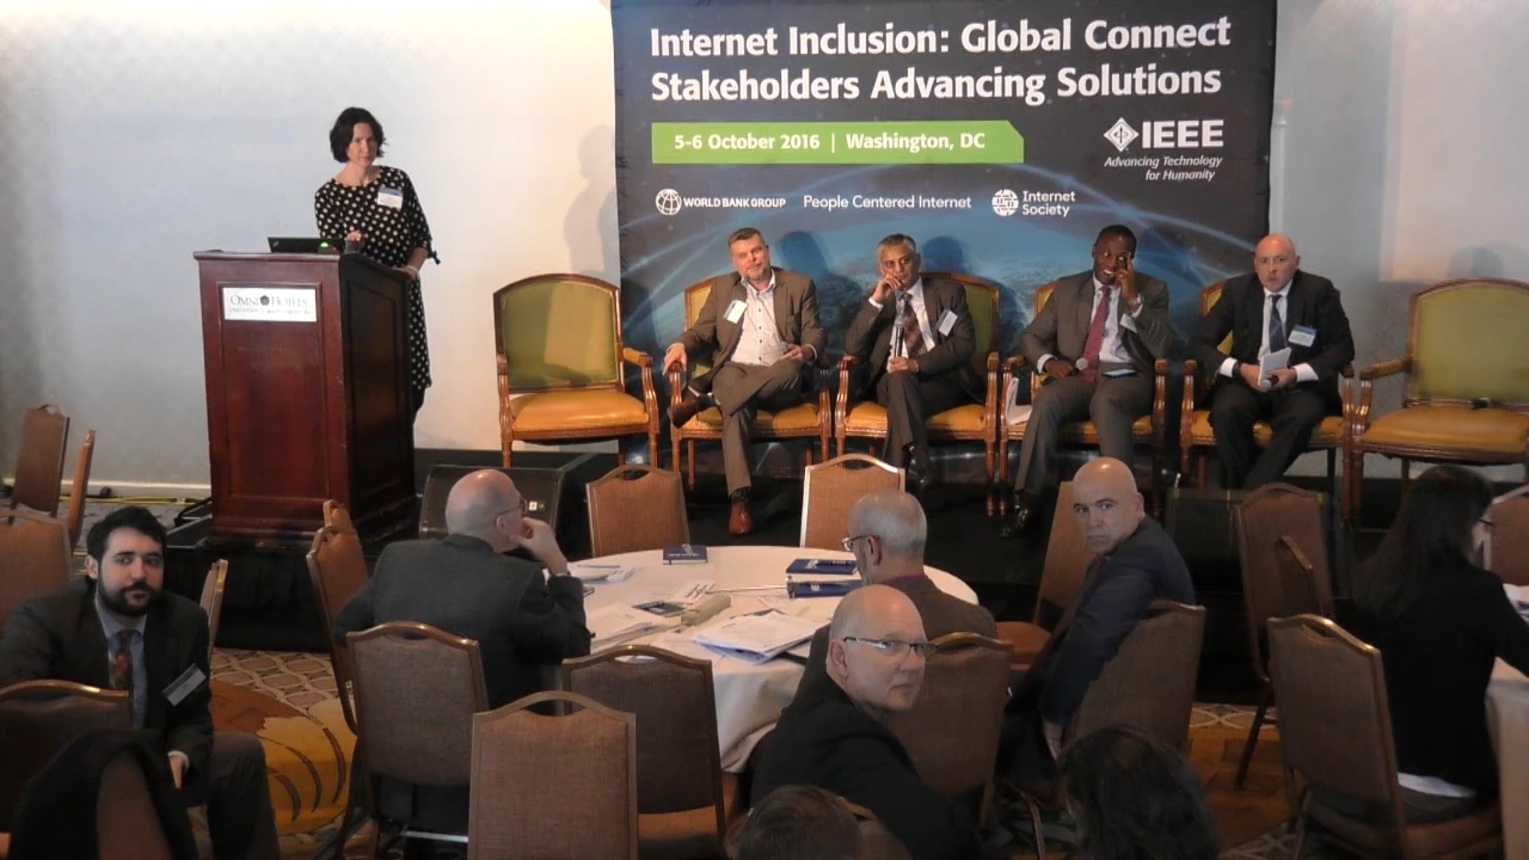 State of Internet Inclusion - Internet Inclusion: Global Connect Stakeholders Advancing Solutions, Washington DC, 2016